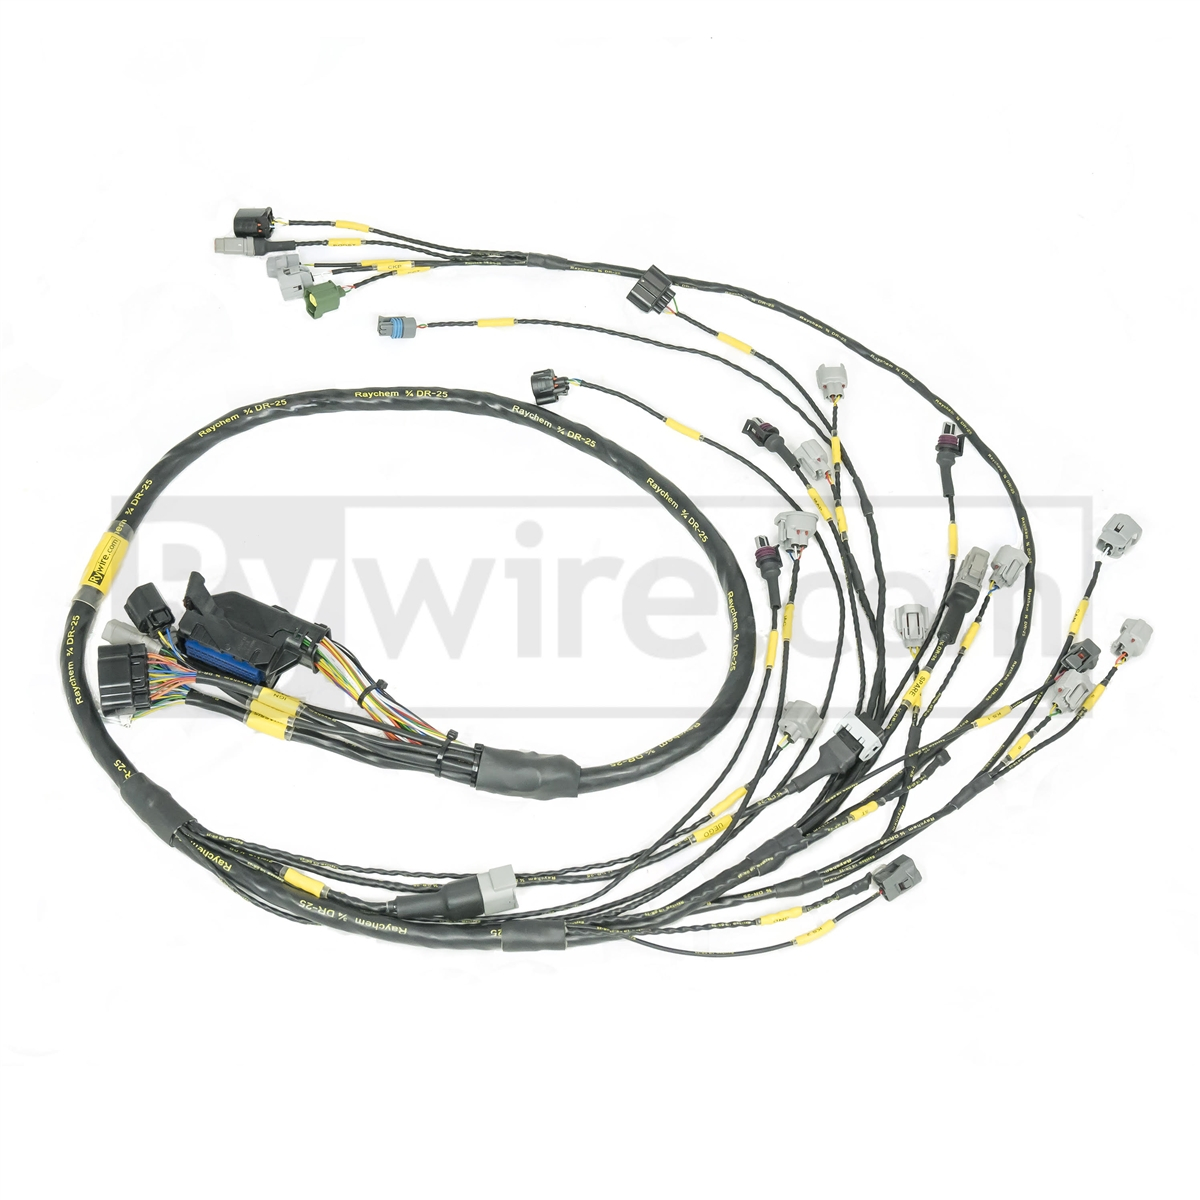 hight resolution of toyota 2jz infinity 506 mil spec engine harness ford engine wiring harness toyota engine harness